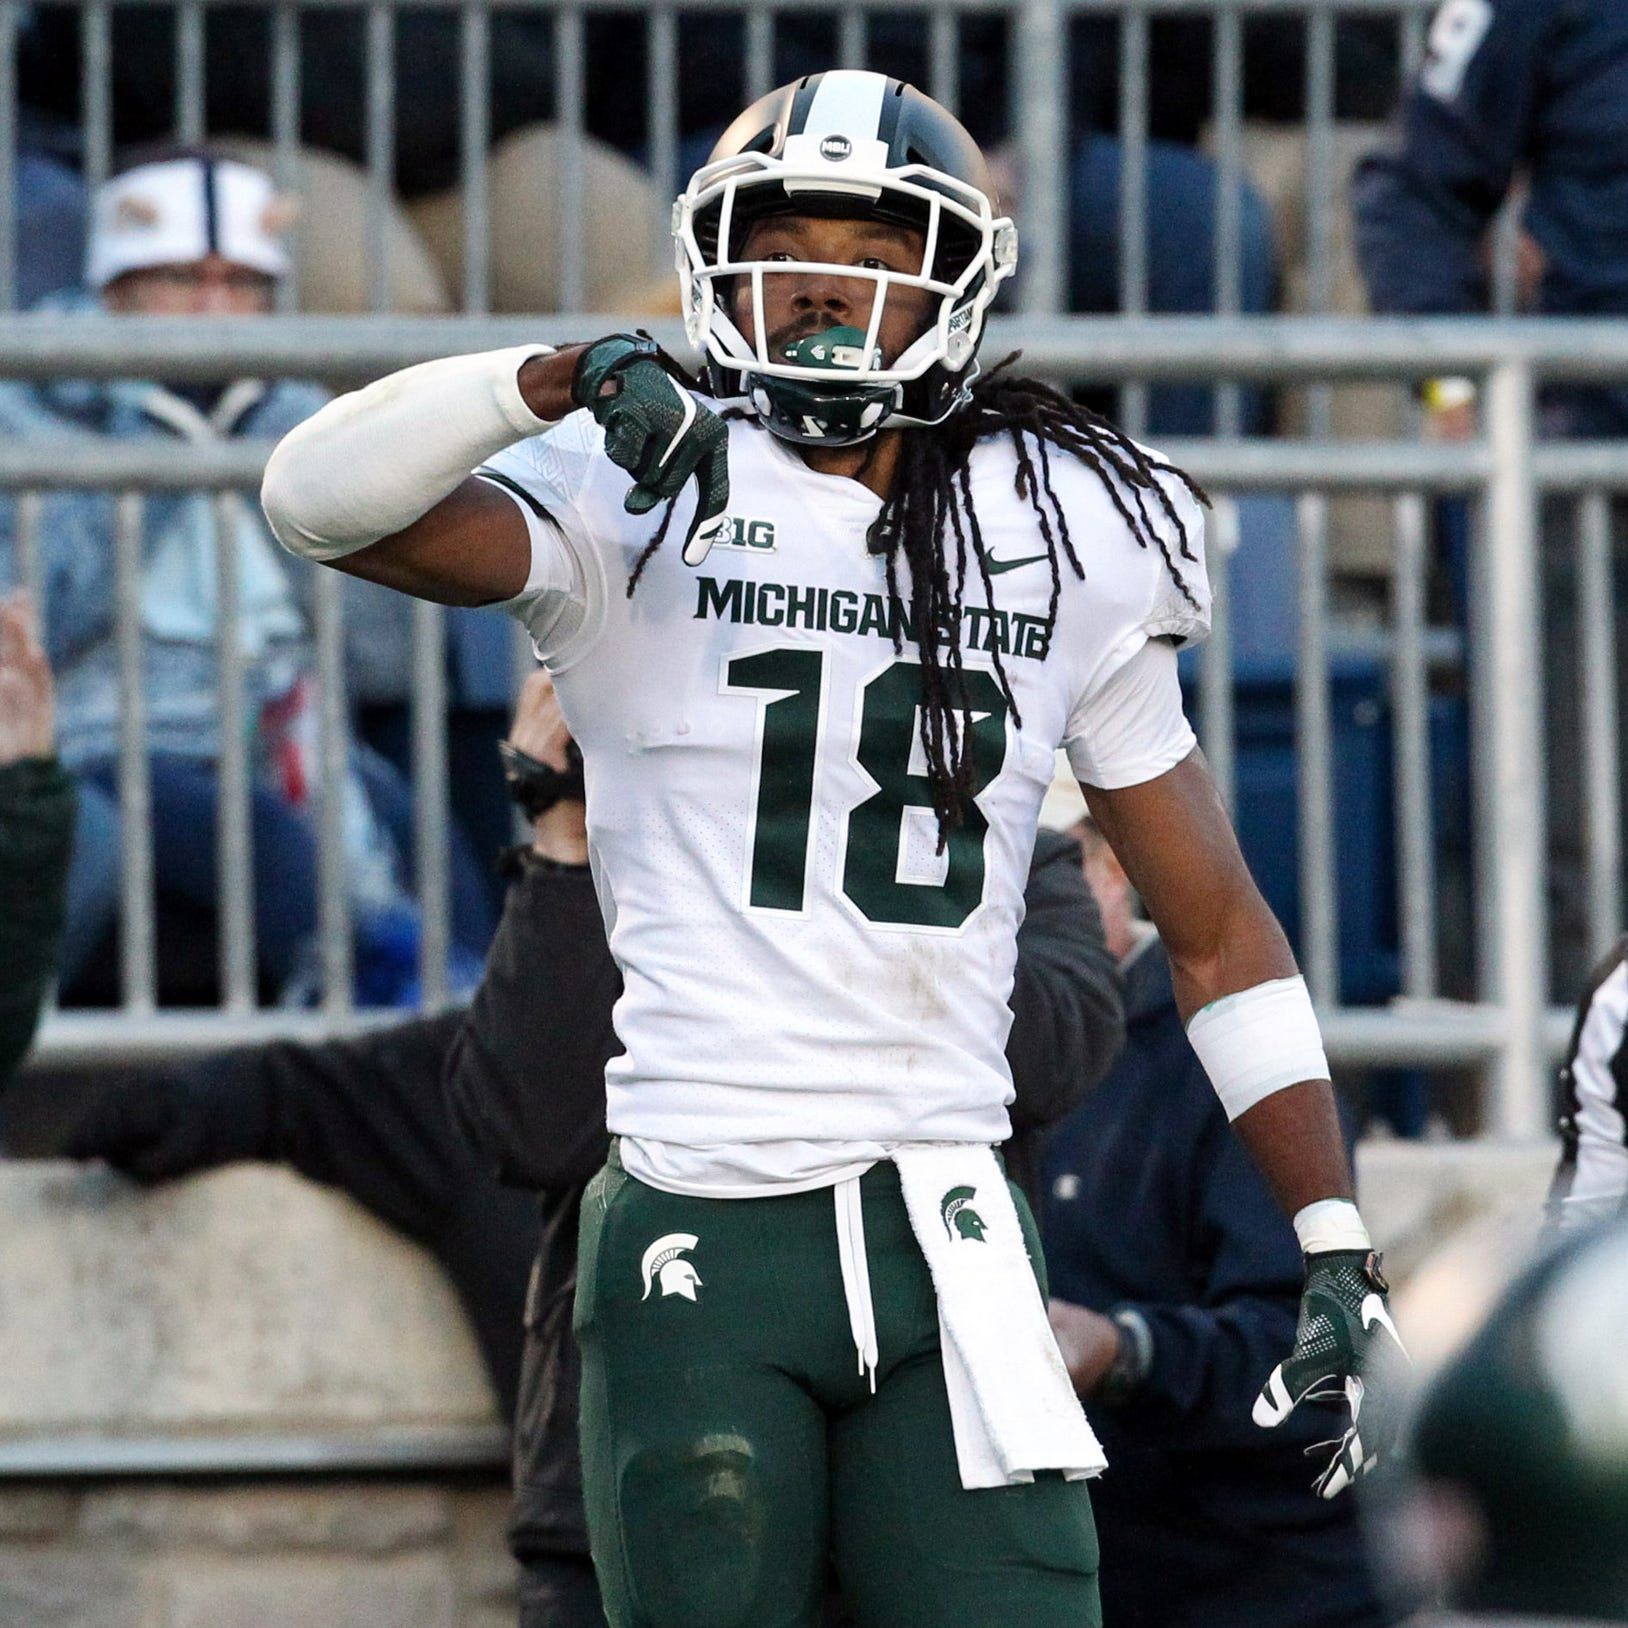 Michigan State football: What we learned, what to watch vs. Michigan